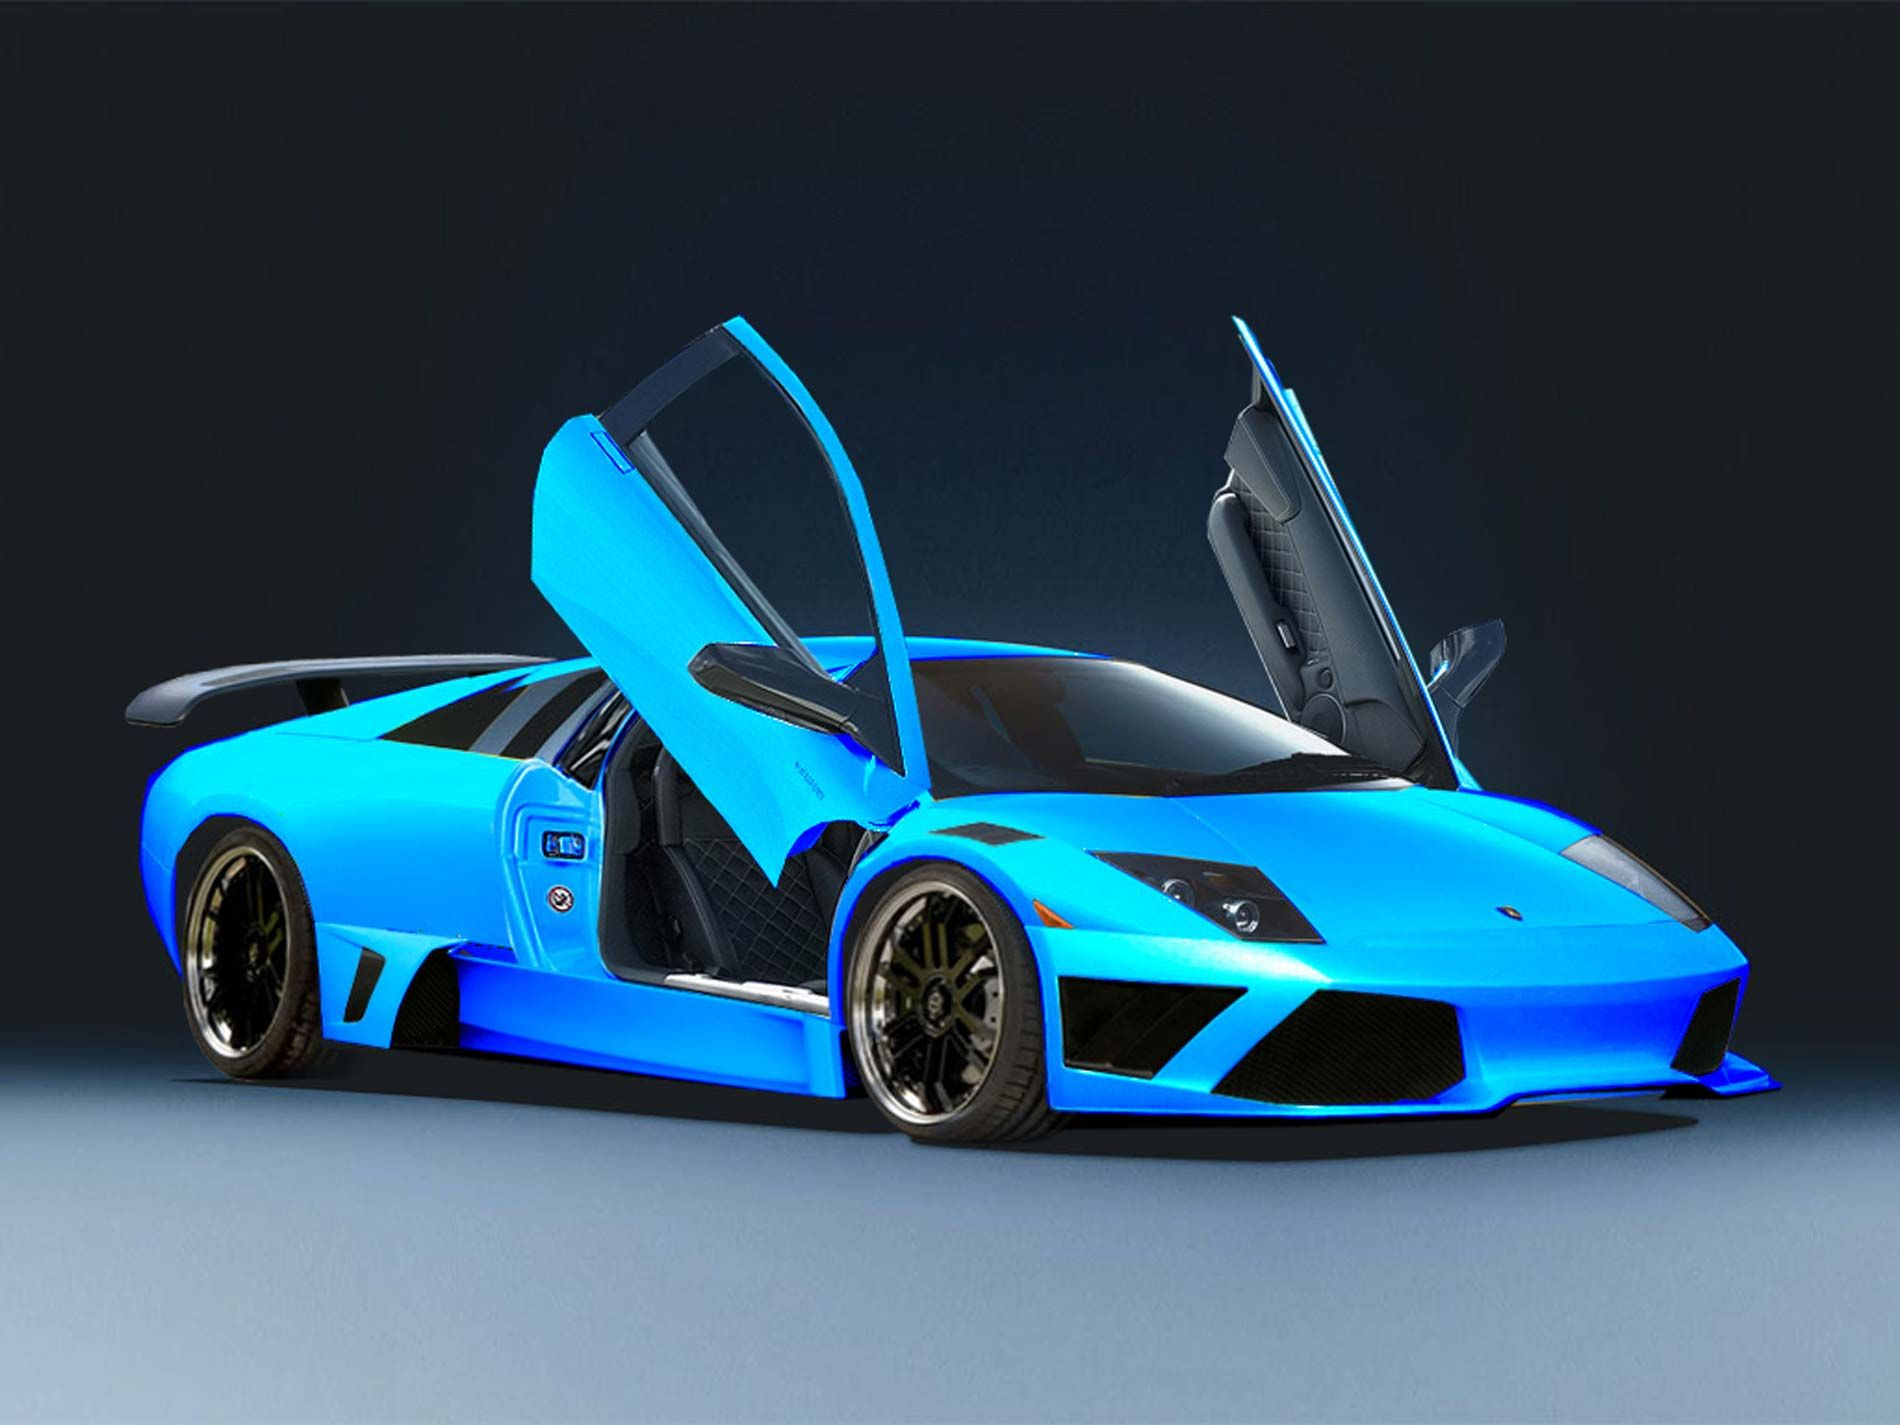 I Am Excited To See Cars From Italy That Are World Famous Like Lamborghini Maserati